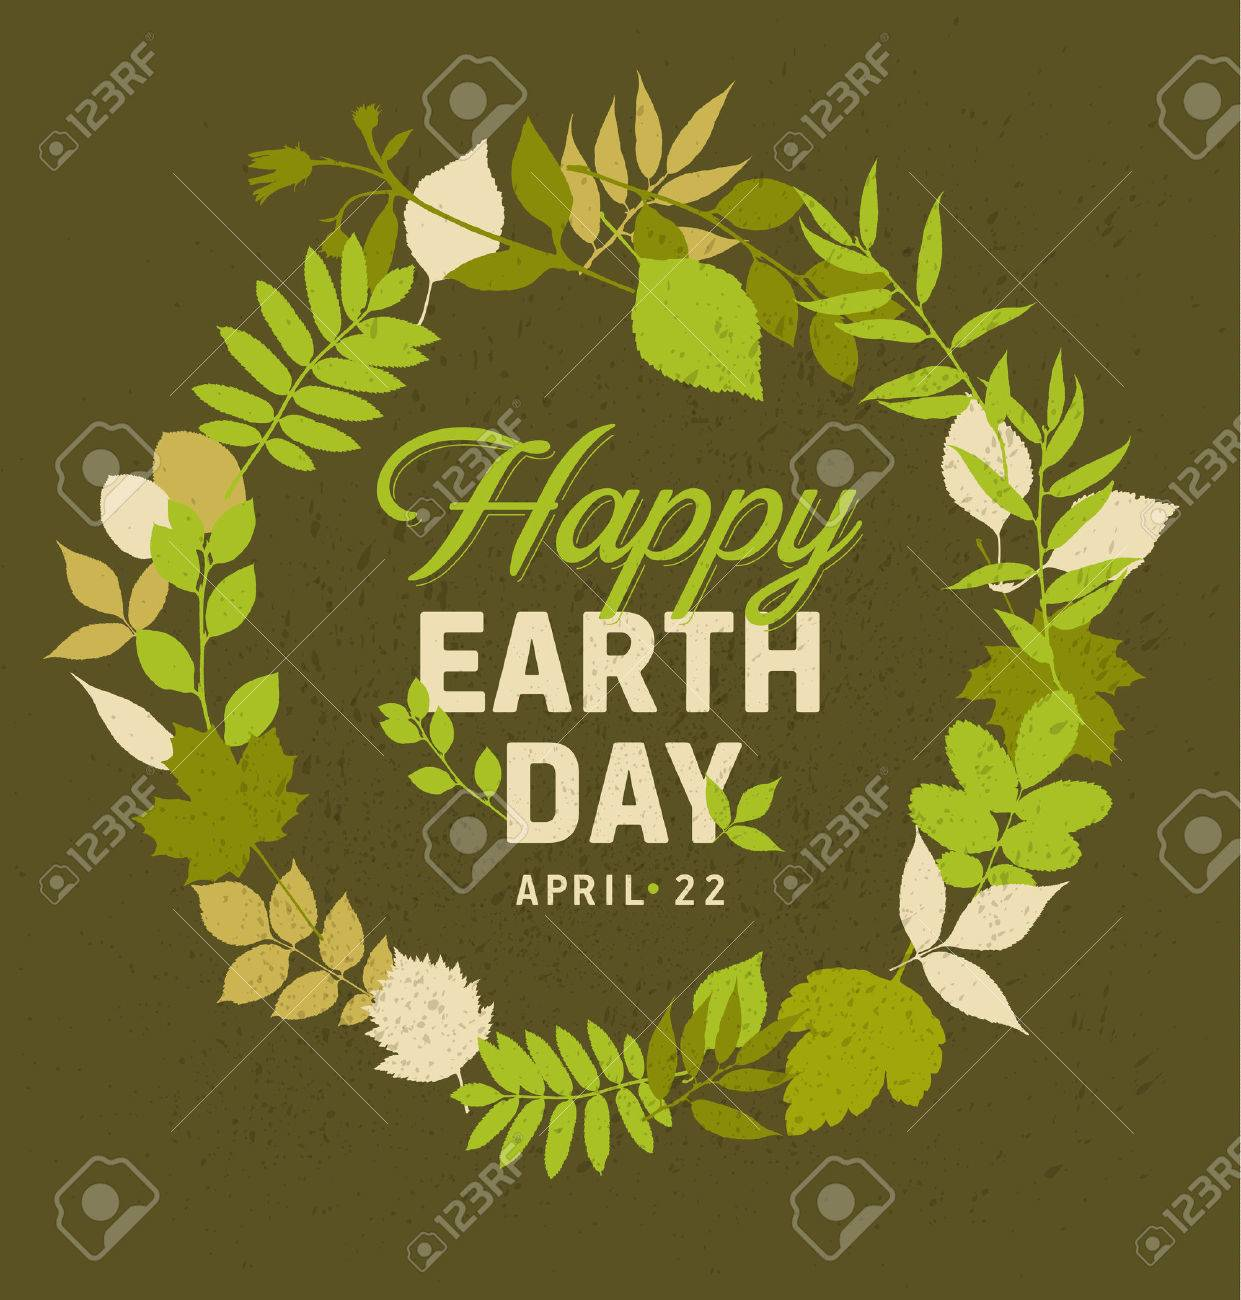 Happy Earth Day Images happy earth day background royalty free cliparts, vectors, and stock